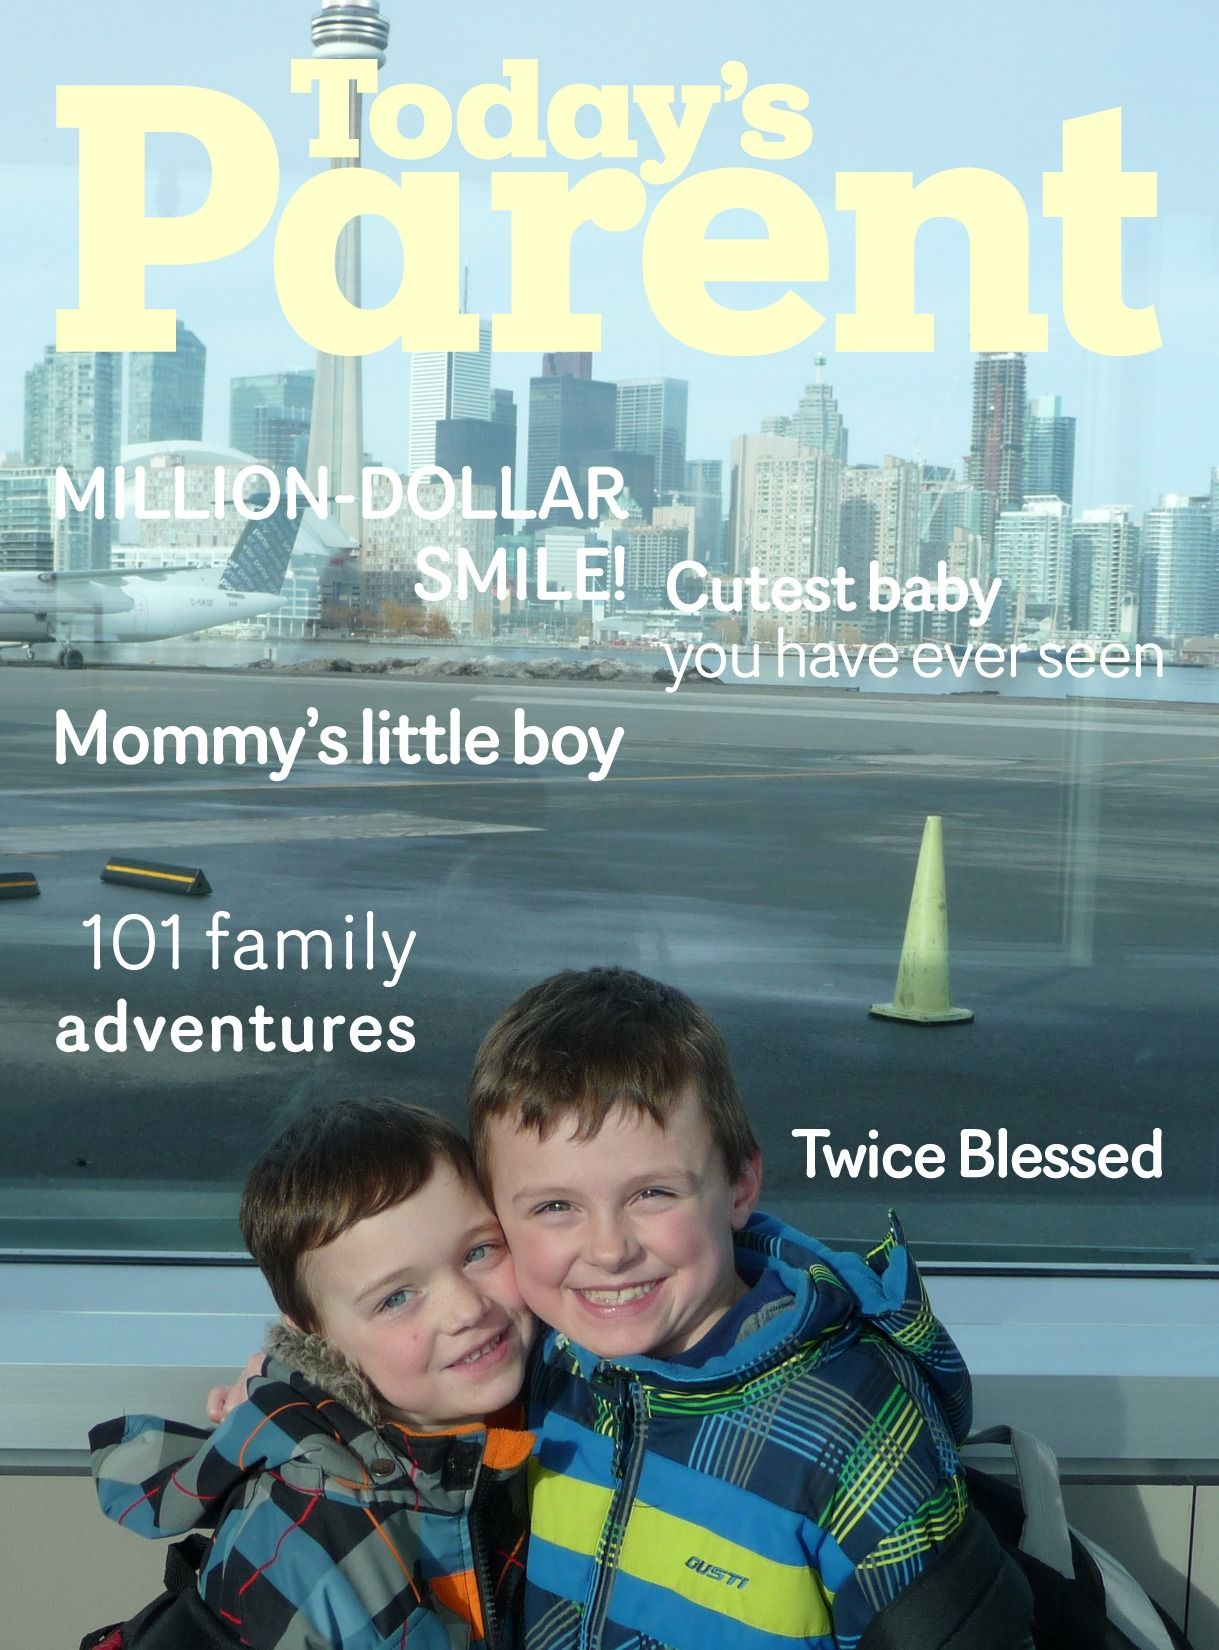 Today's Parent Covertool - Look Who's on the Cover of Today's Parent!